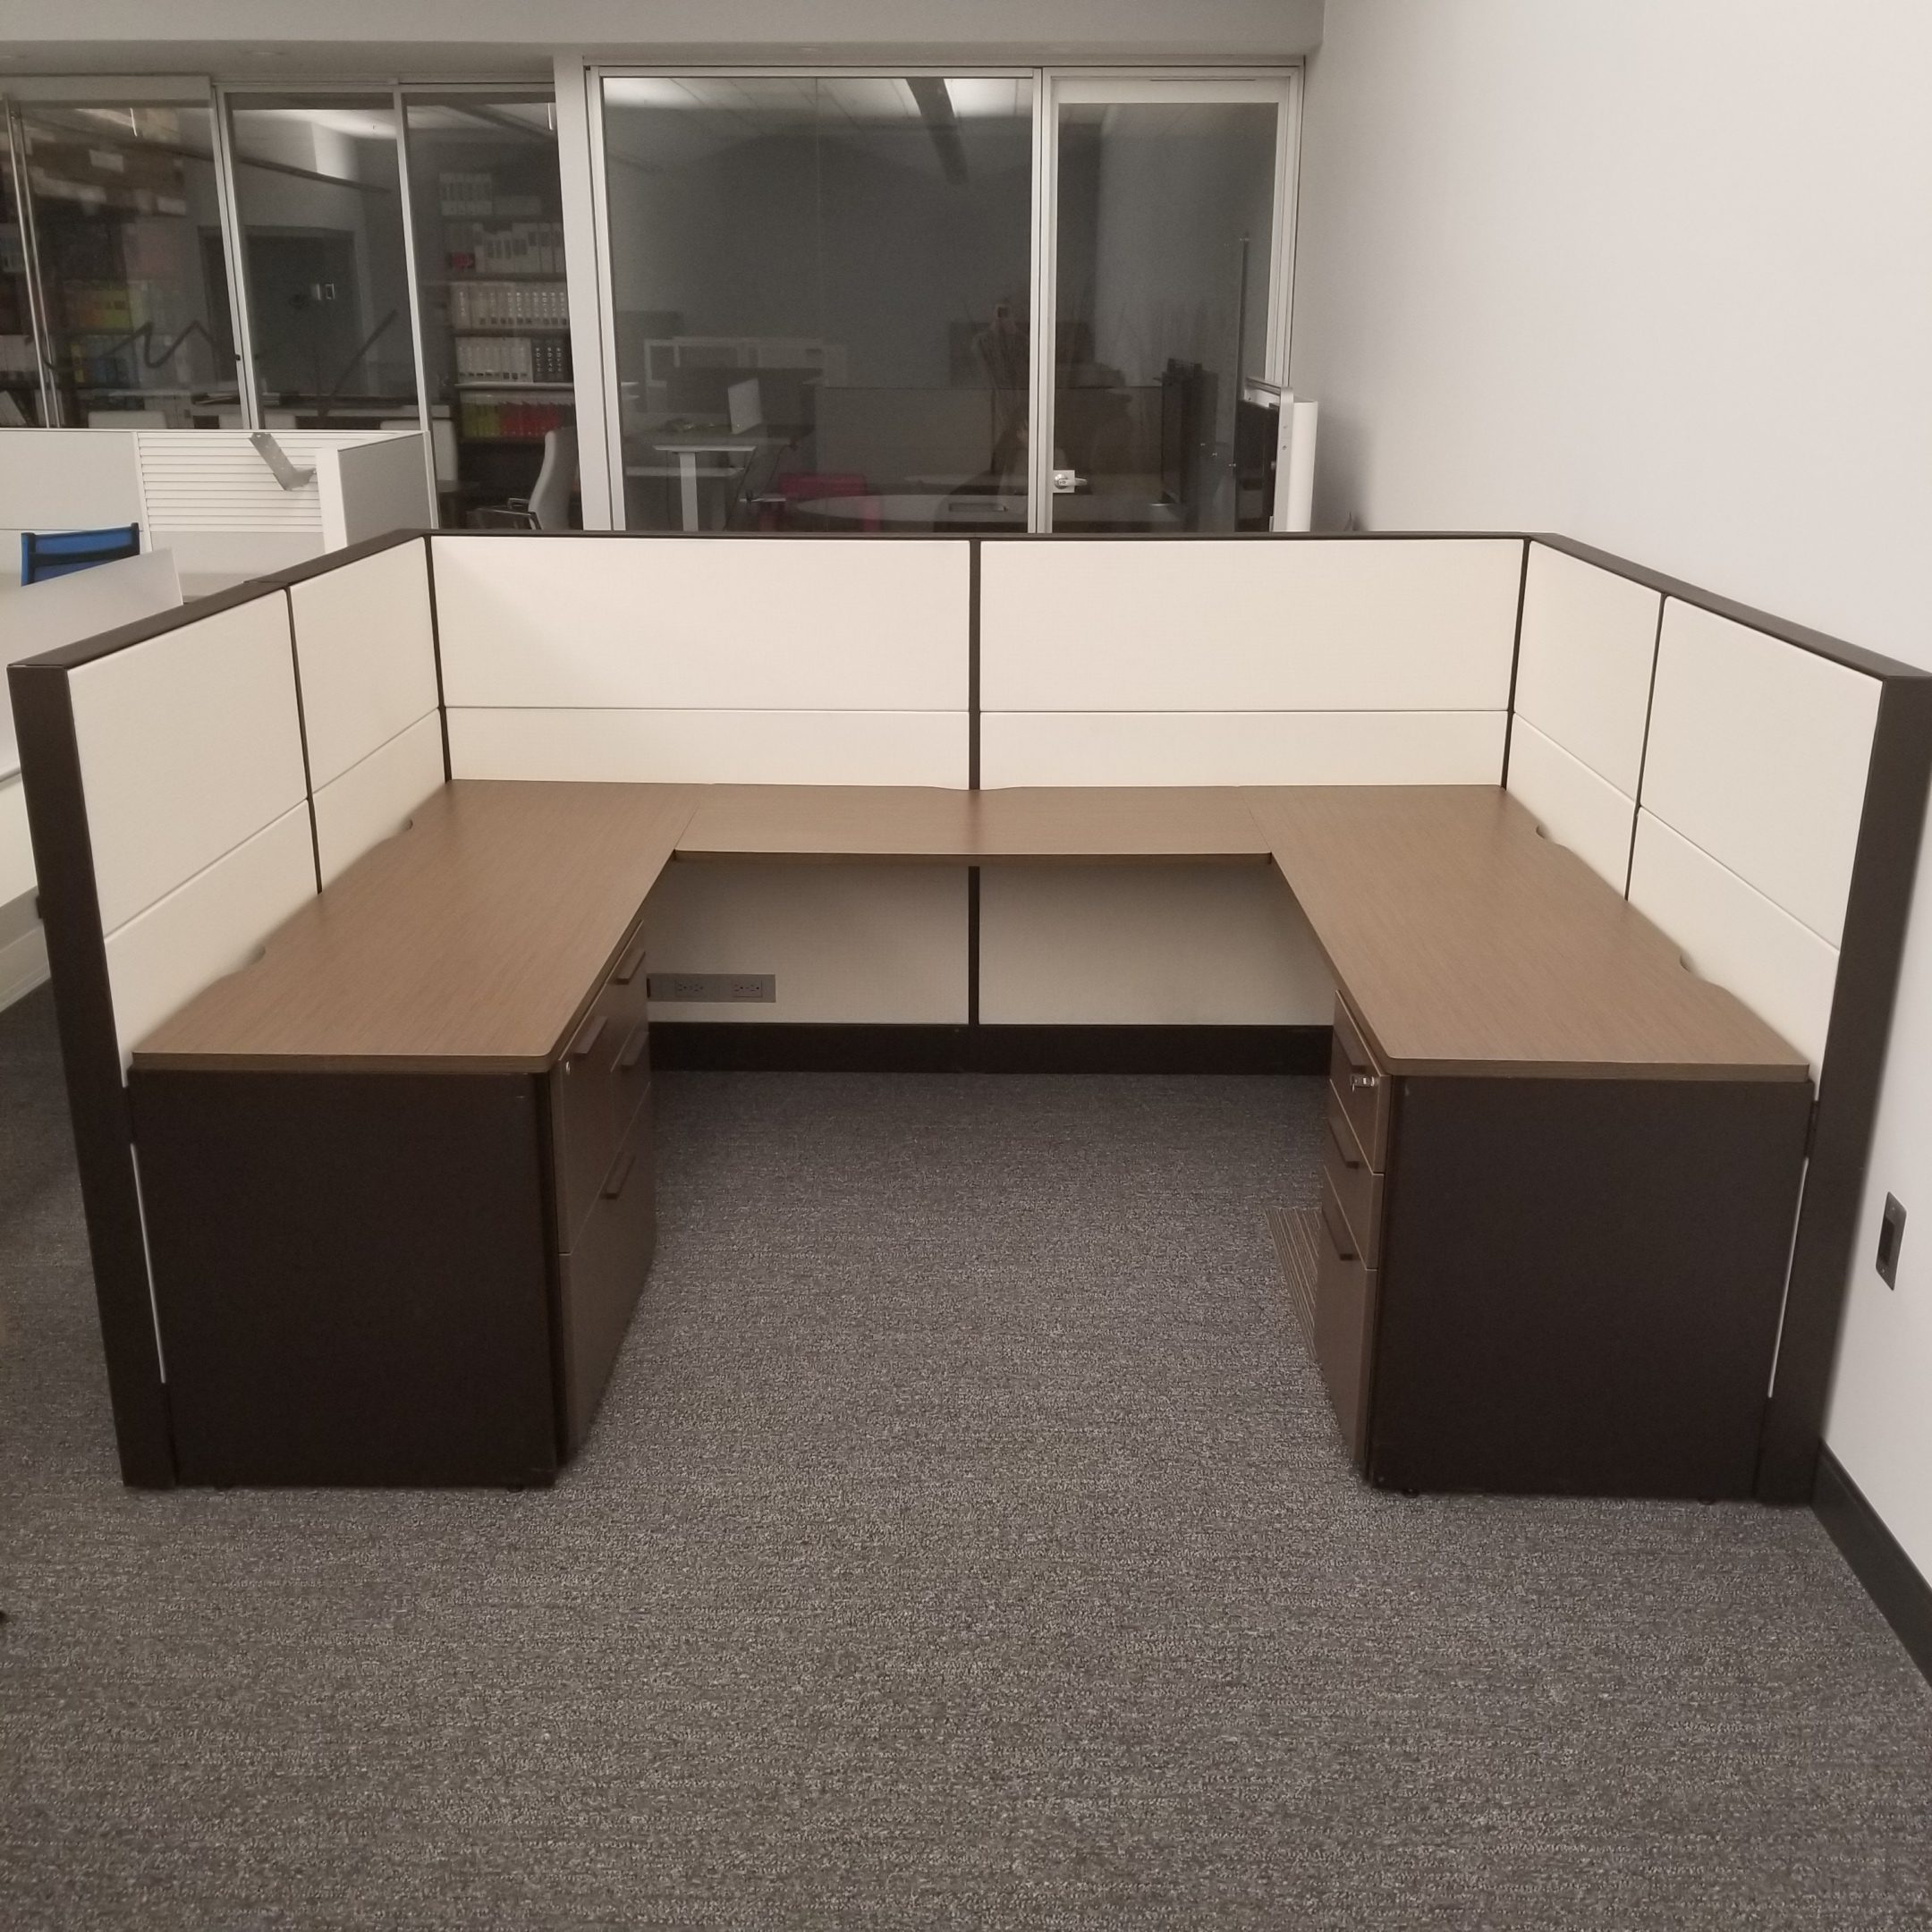 Texas Leverage 6×6 or 6×8 Workstations